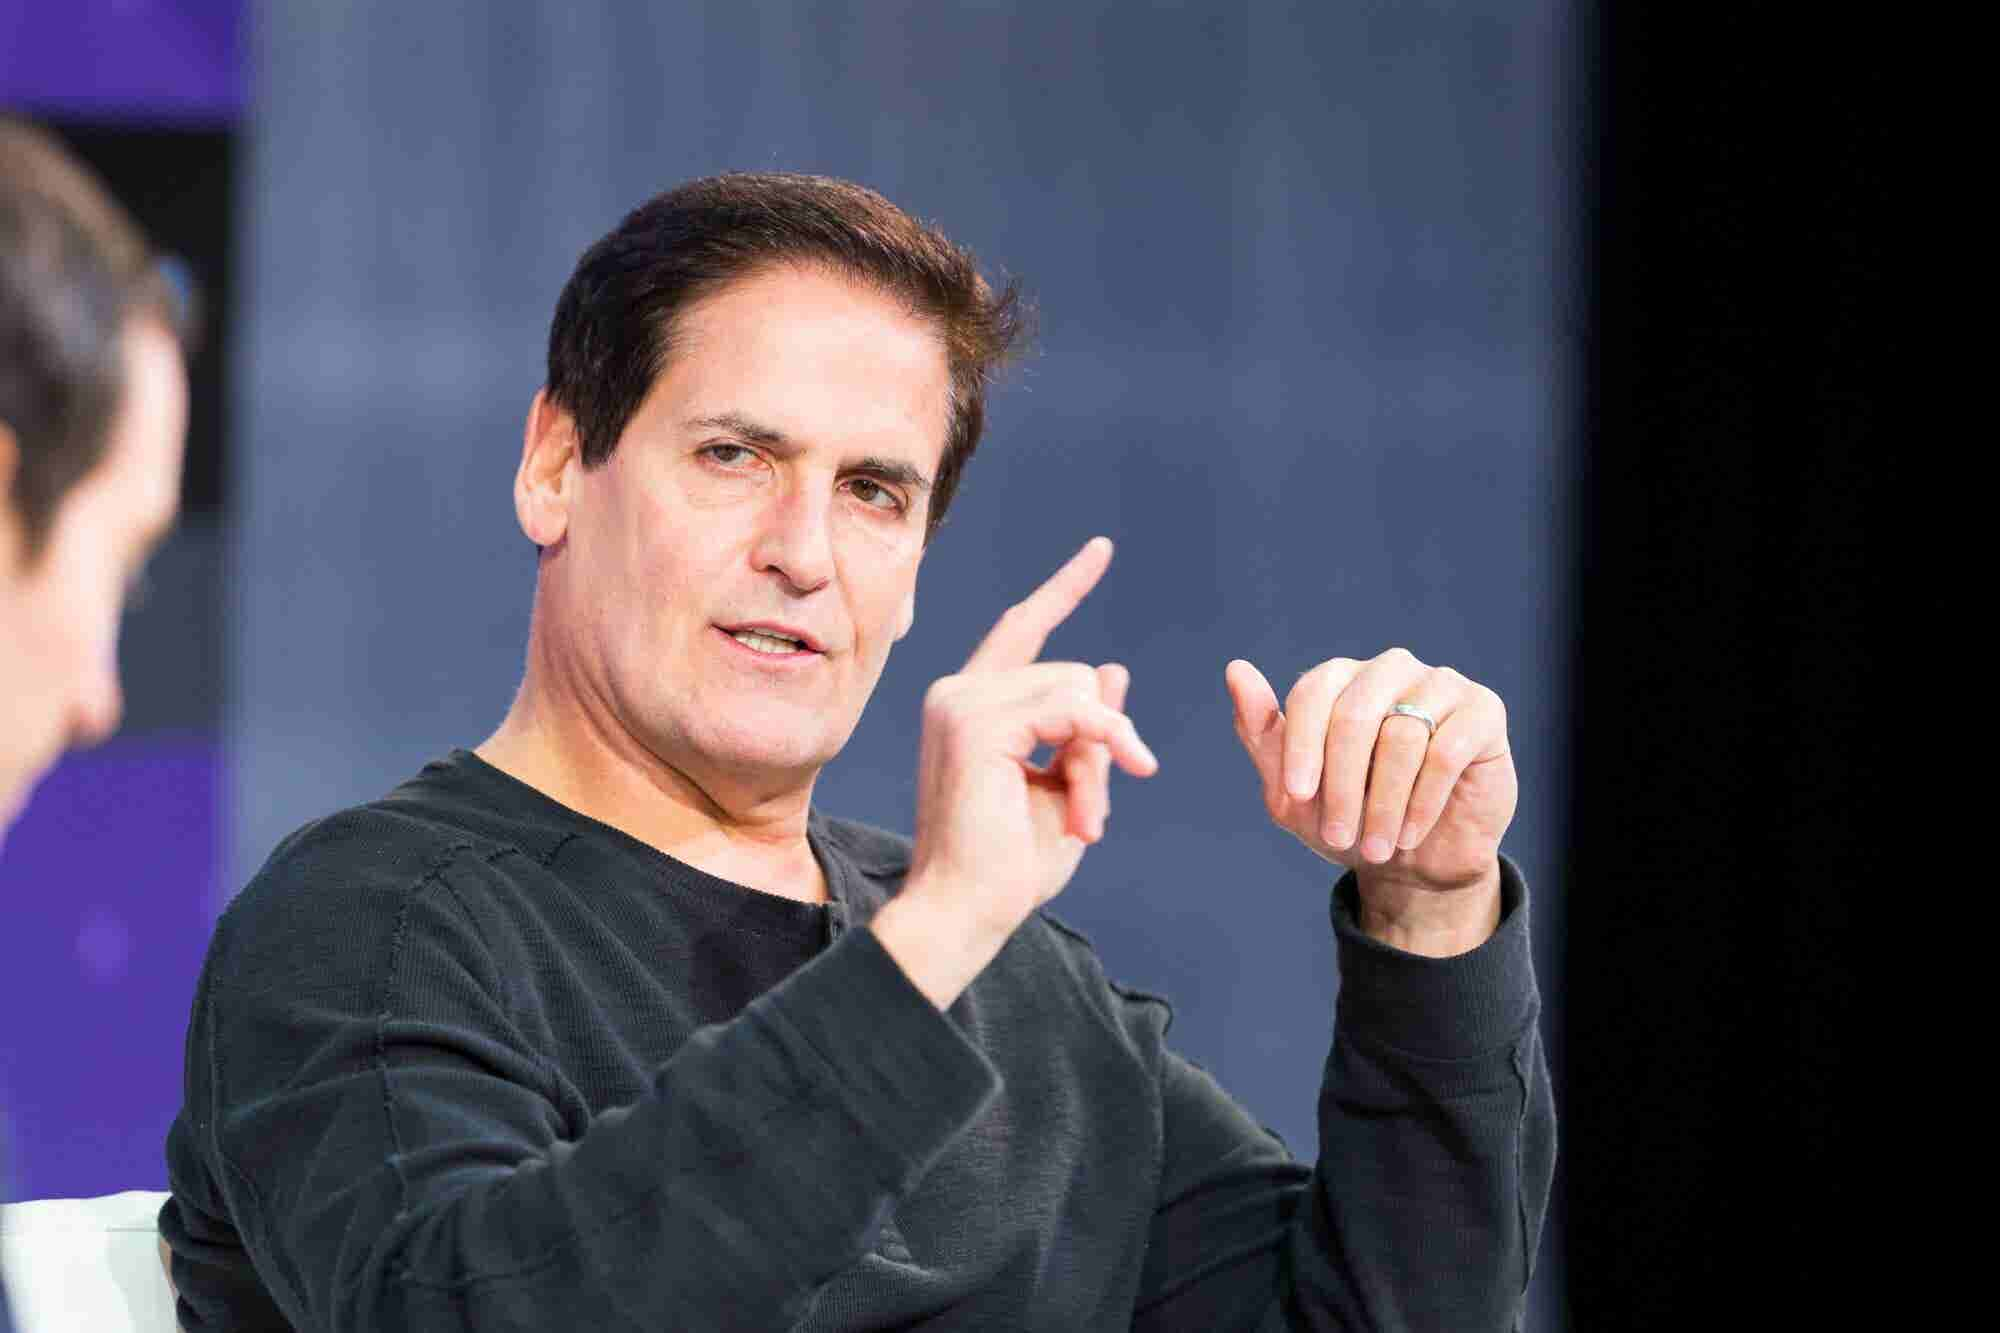 Why Big-Name Investors Like Mark Cuban Are Disrupting the Legal Profession